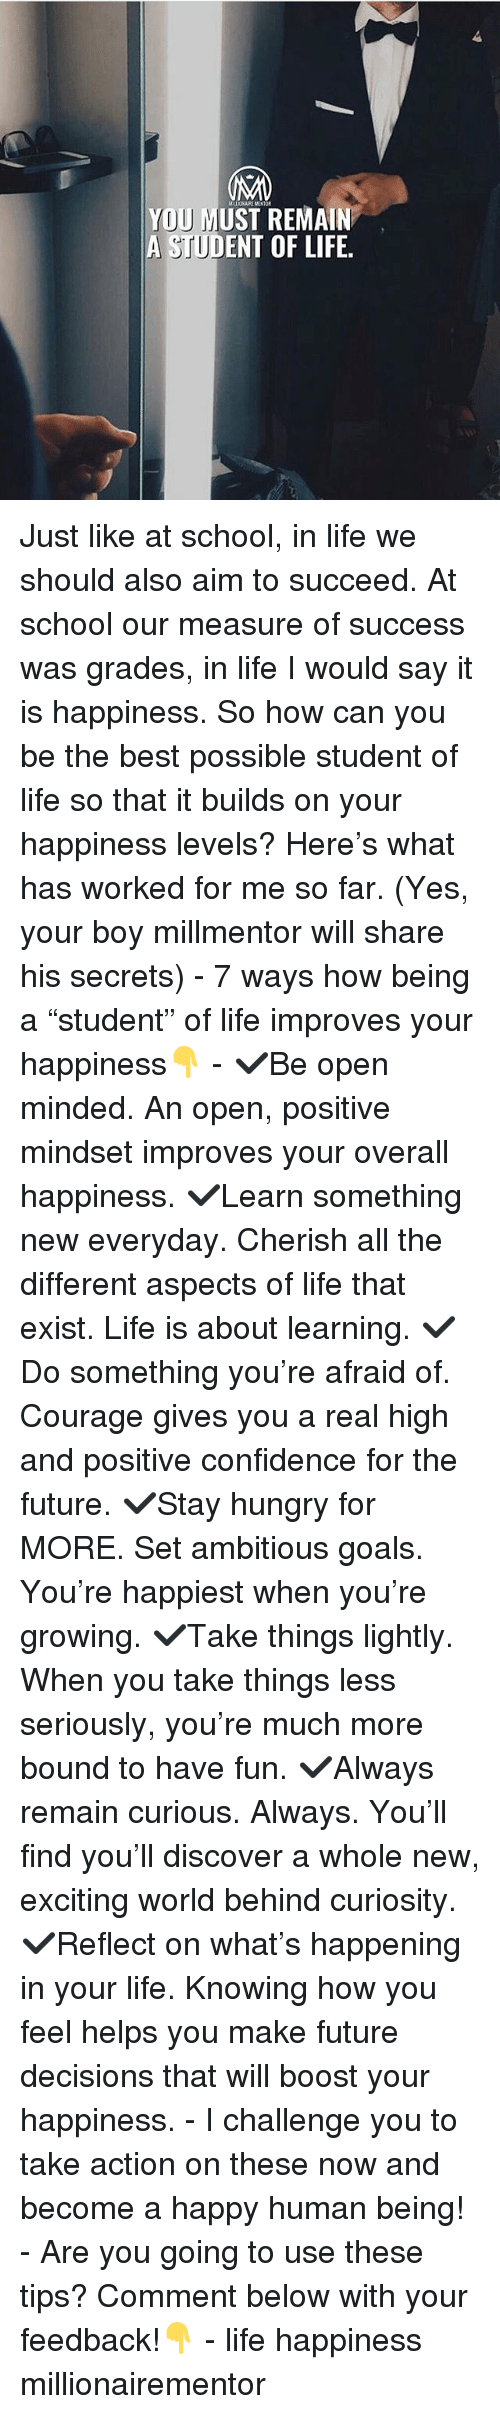 """Confidence, Future, and Goals: YOU MUST REMAIN  A STUDENT OF LIFE. Just like at school, in life we should also aim to succeed. At school our measure of success was grades, in life I would say it is happiness. So how can you be the best possible student of life so that it builds on your happiness levels? Here's what has worked for me so far. (Yes, your boy millmentor will share his secrets) - 7 ways how being a """"student"""" of life improves your happiness👇 - ✔️Be open minded. An open, positive mindset improves your overall happiness. ✔️Learn something new everyday. Cherish all the different aspects of life that exist. Life is about learning. ✔️Do something you're afraid of. Courage gives you a real high and positive confidence for the future. ✔️Stay hungry for MORE. Set ambitious goals. You're happiest when you're growing. ✔️Take things lightly. When you take things less seriously, you're much more bound to have fun. ✔️Always remain curious. Always. You'll find you'll discover a whole new, exciting world behind curiosity. ✔️Reflect on what's happening in your life. Knowing how you feel helps you make future decisions that will boost your happiness. - I challenge you to take action on these now and become a happy human being! - Are you going to use these tips? Comment below with your feedback!👇 - life happiness millionairementor"""